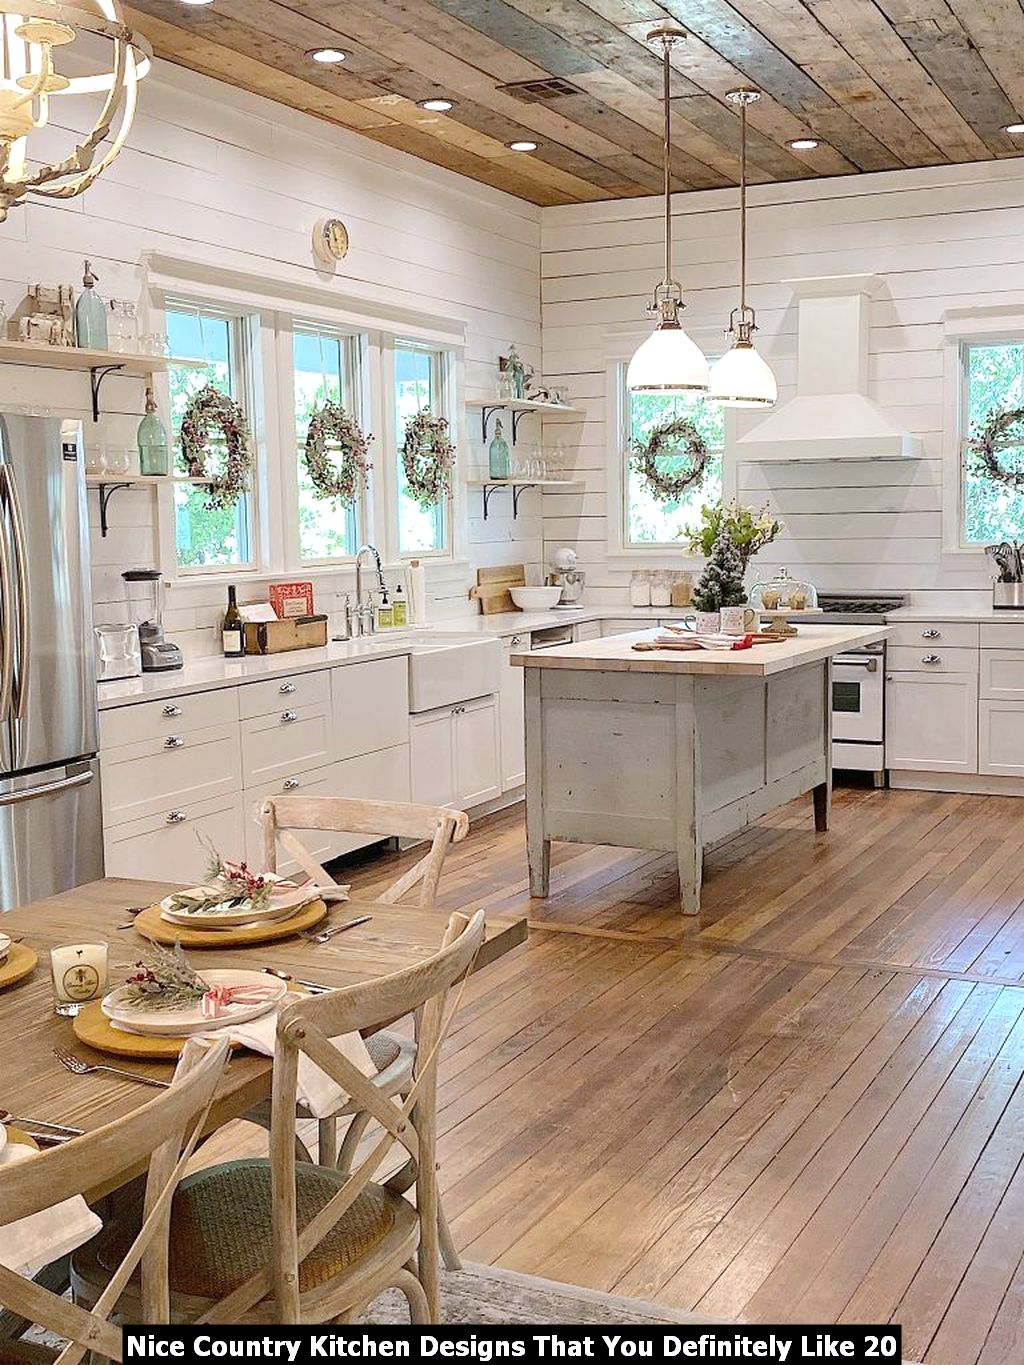 Nice Country Kitchen Designs That You Definitely Like 20